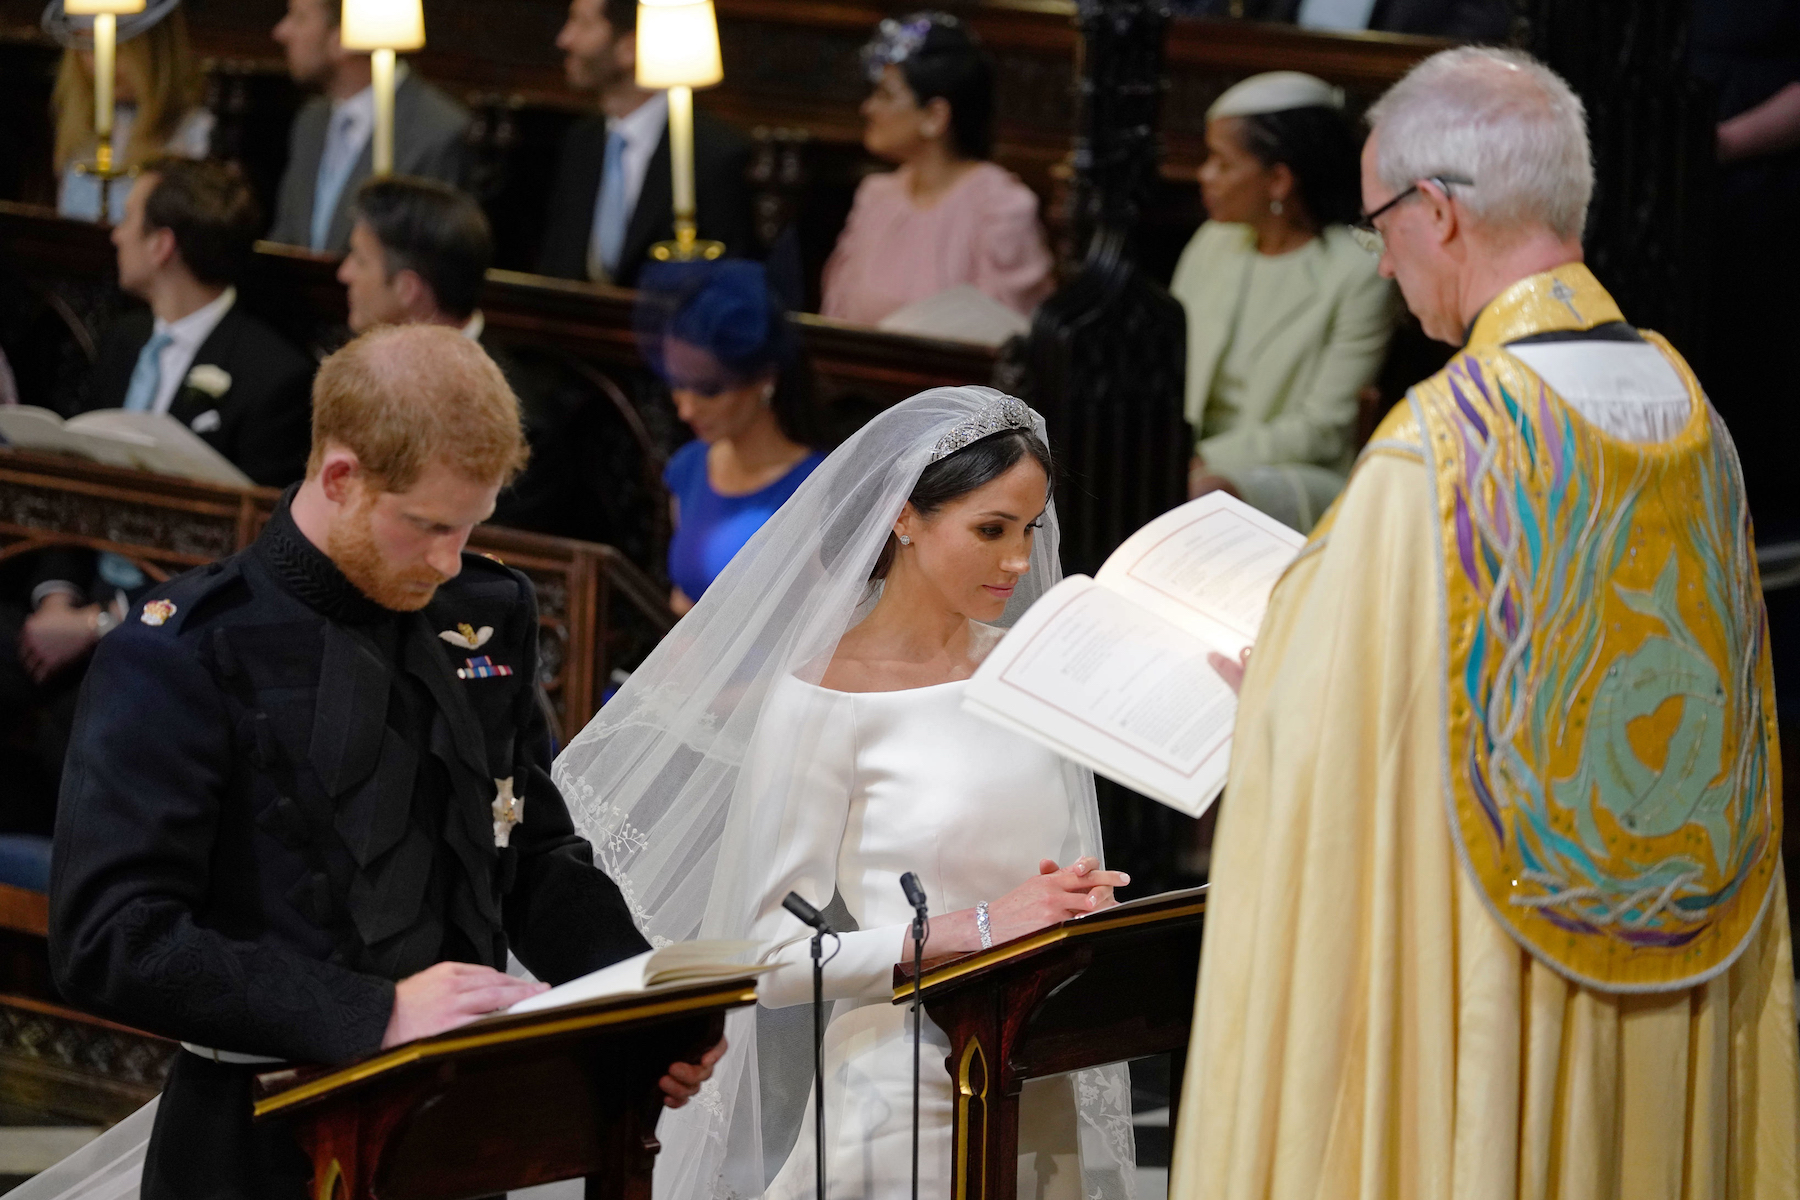 "<div class=""meta image-caption""><div class=""origin-logo origin-image wls""><span>wls</span></div><span class=""caption-text"">Britain's Prince Harry, Duke of Sussex (L) and US fiancee of Britain's Prince Harry Meghan Markle stand together at the High Altar. (Dominic Lipinsky/AFP/Getty Images)</span></div>"